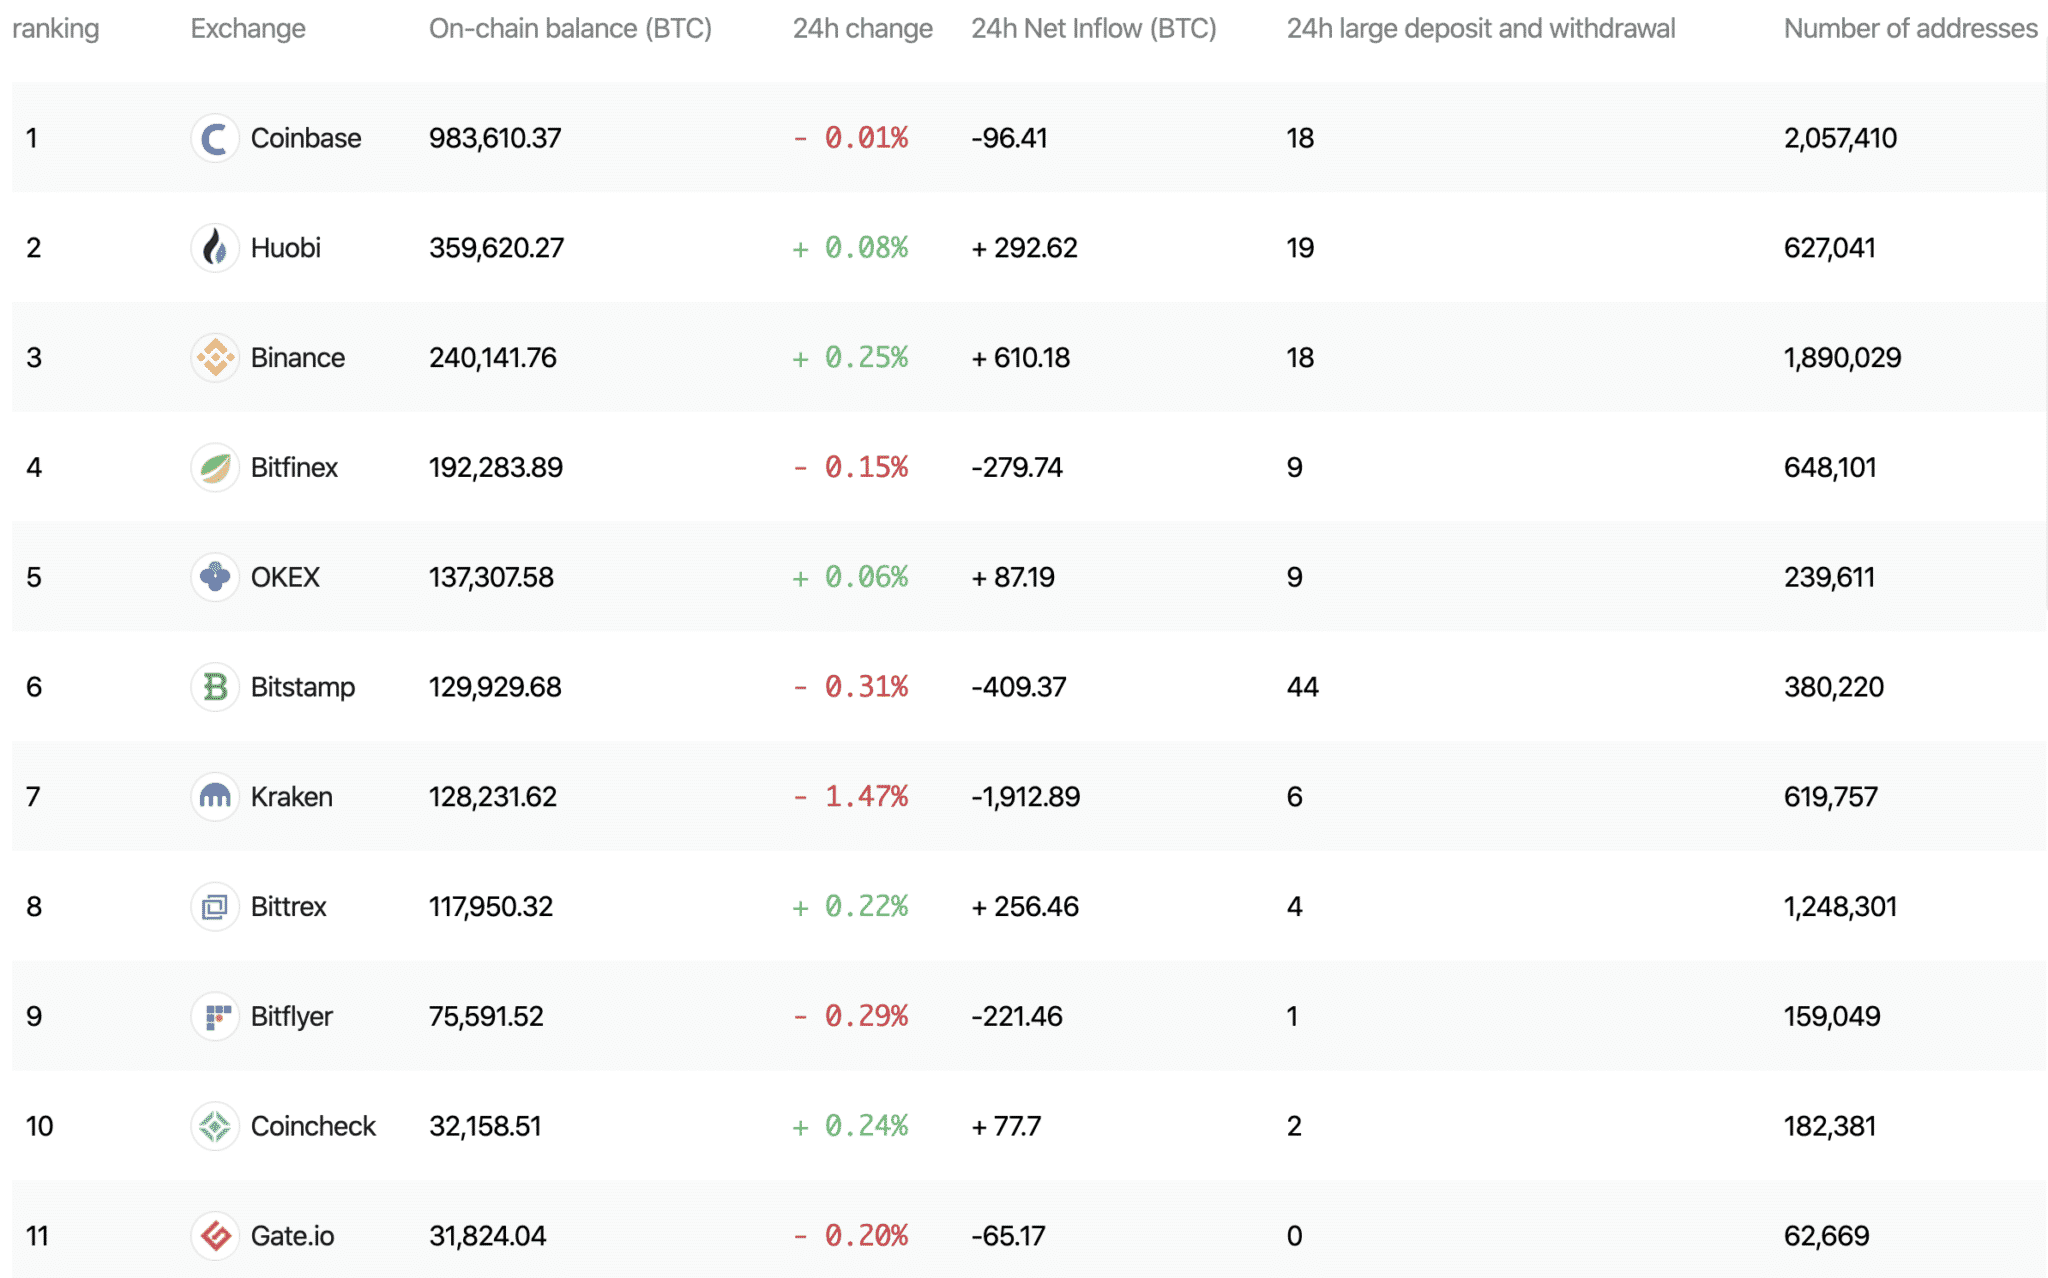 Top bitcoin exchanges by holdings, Jan 2020